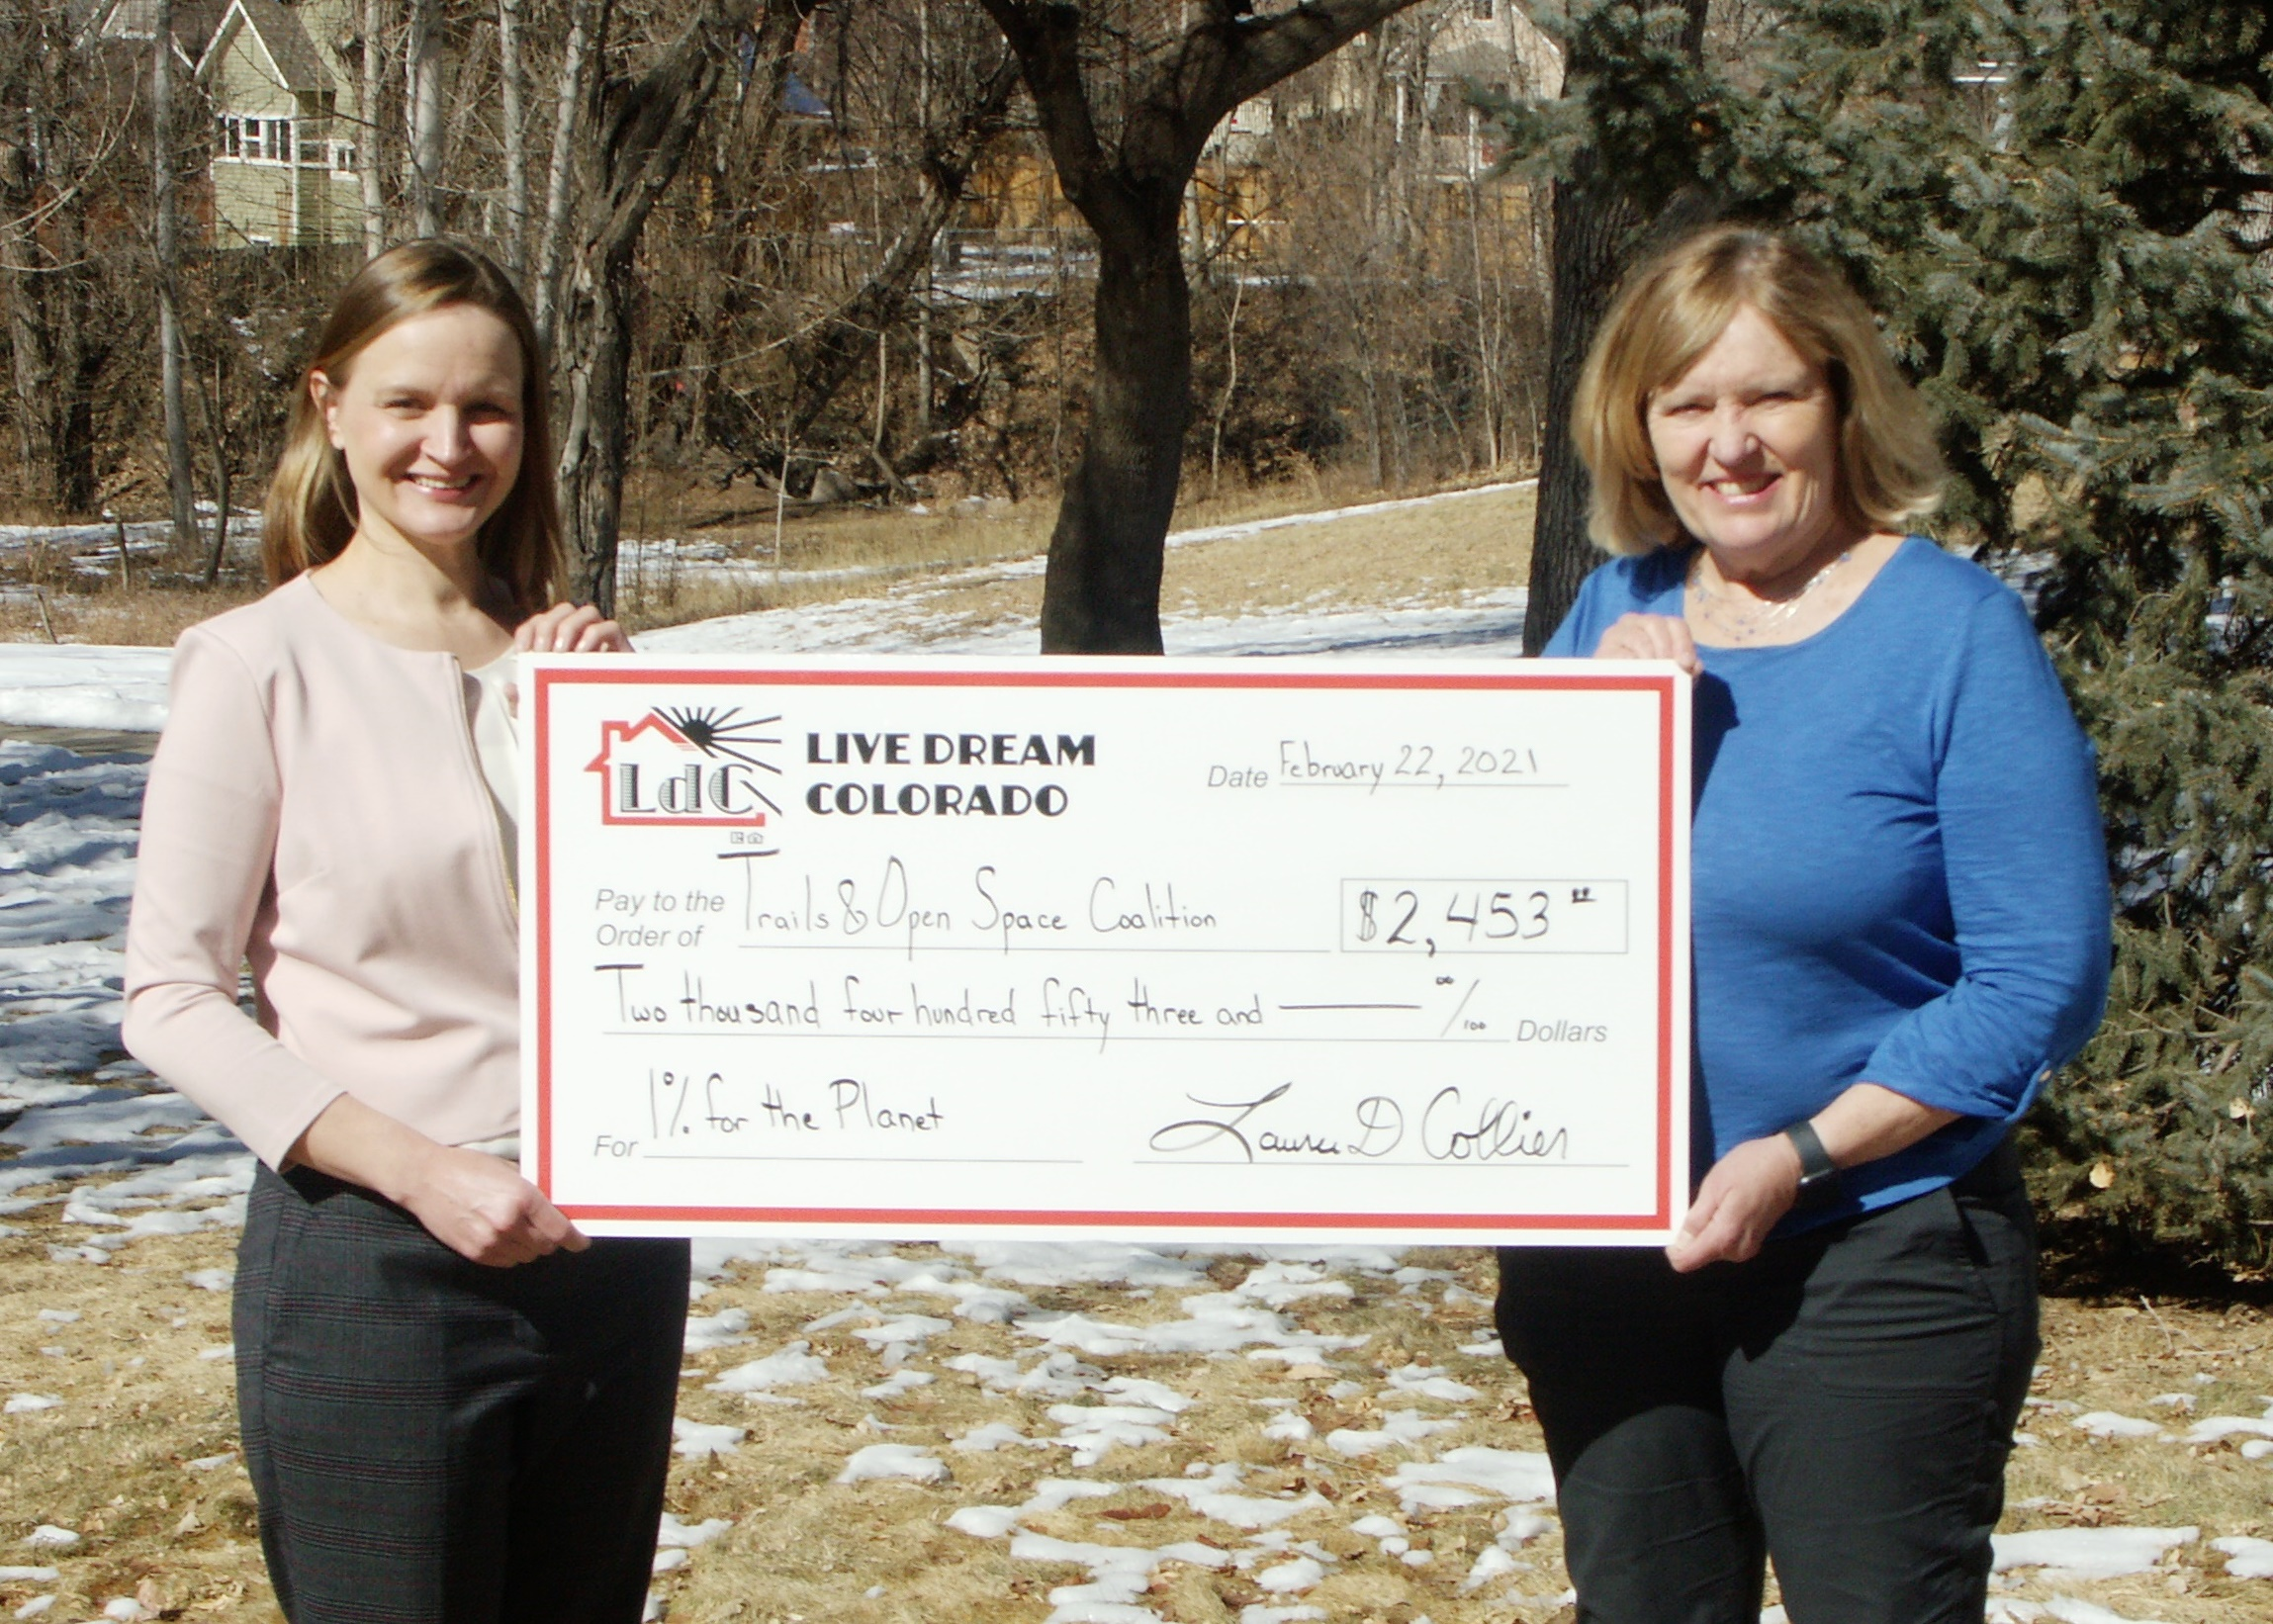 For The Seventh Year Real Estate Brokerage Live Dream Colorado Fulfills Annual 1% For The Planet Pledge, Donating To Support The Environment